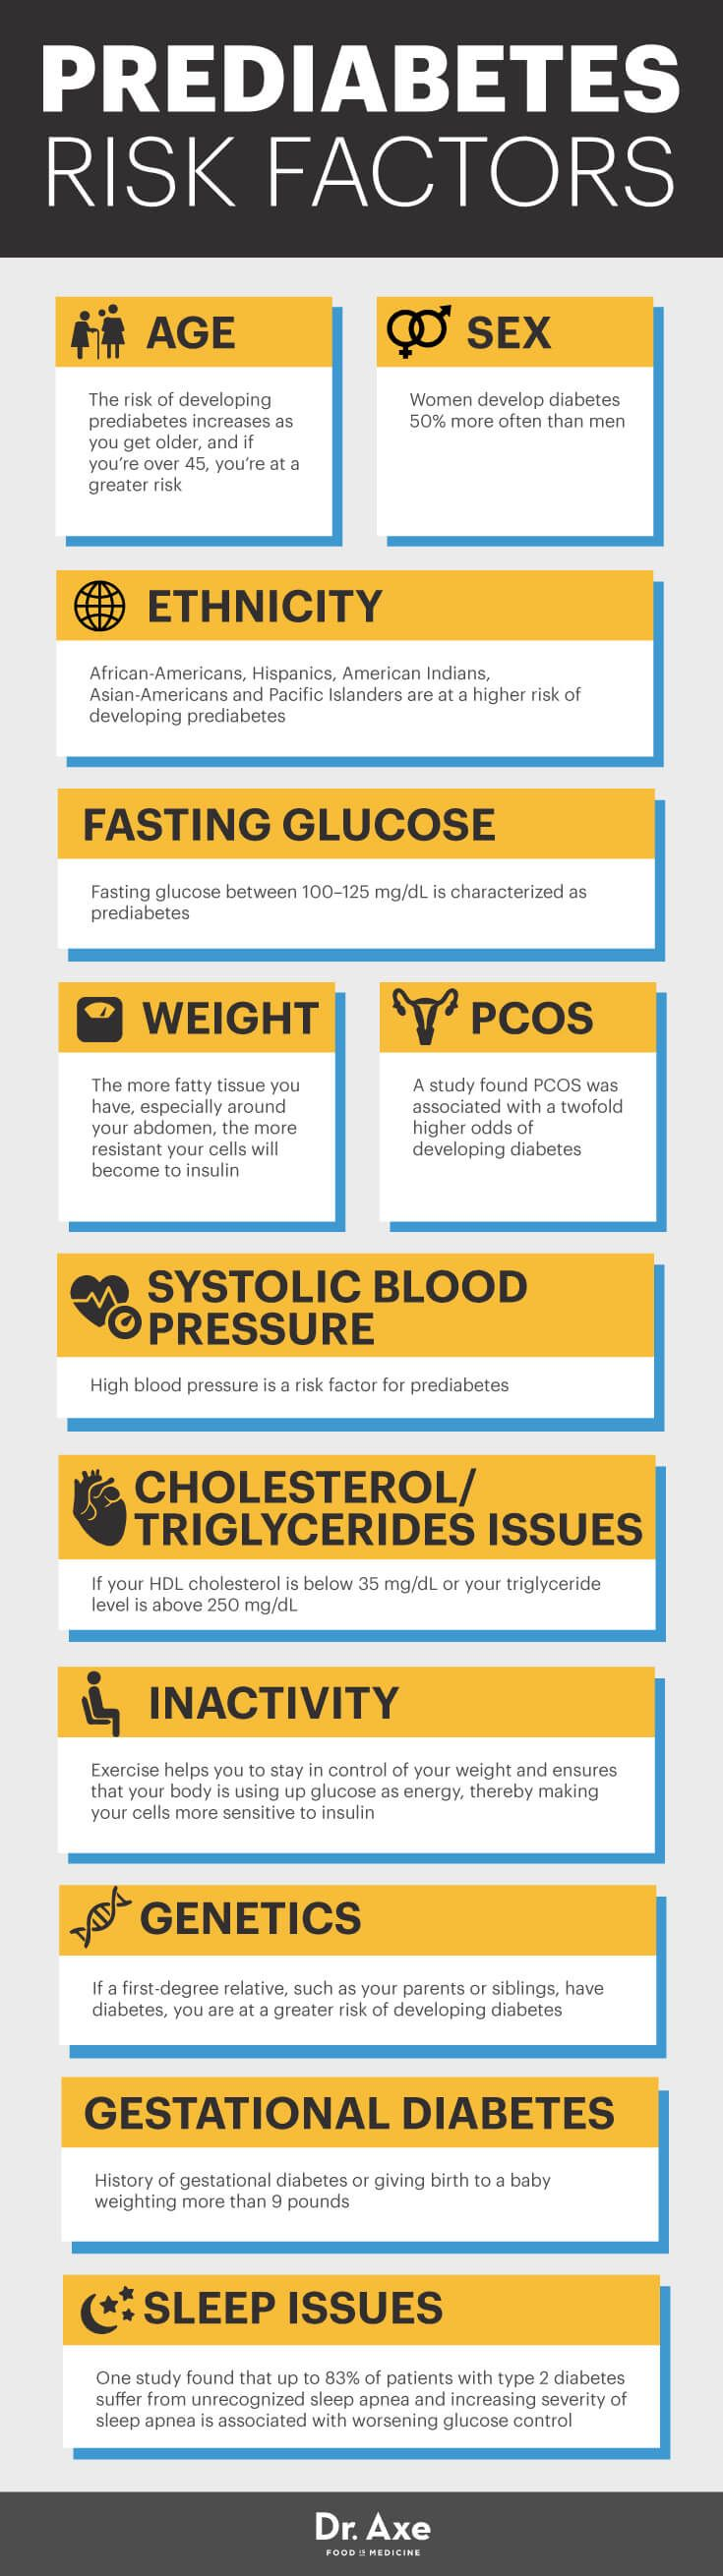 Prediabetes risk factors - Dr. Axe http://www.draxe.com #health #holistic #natural